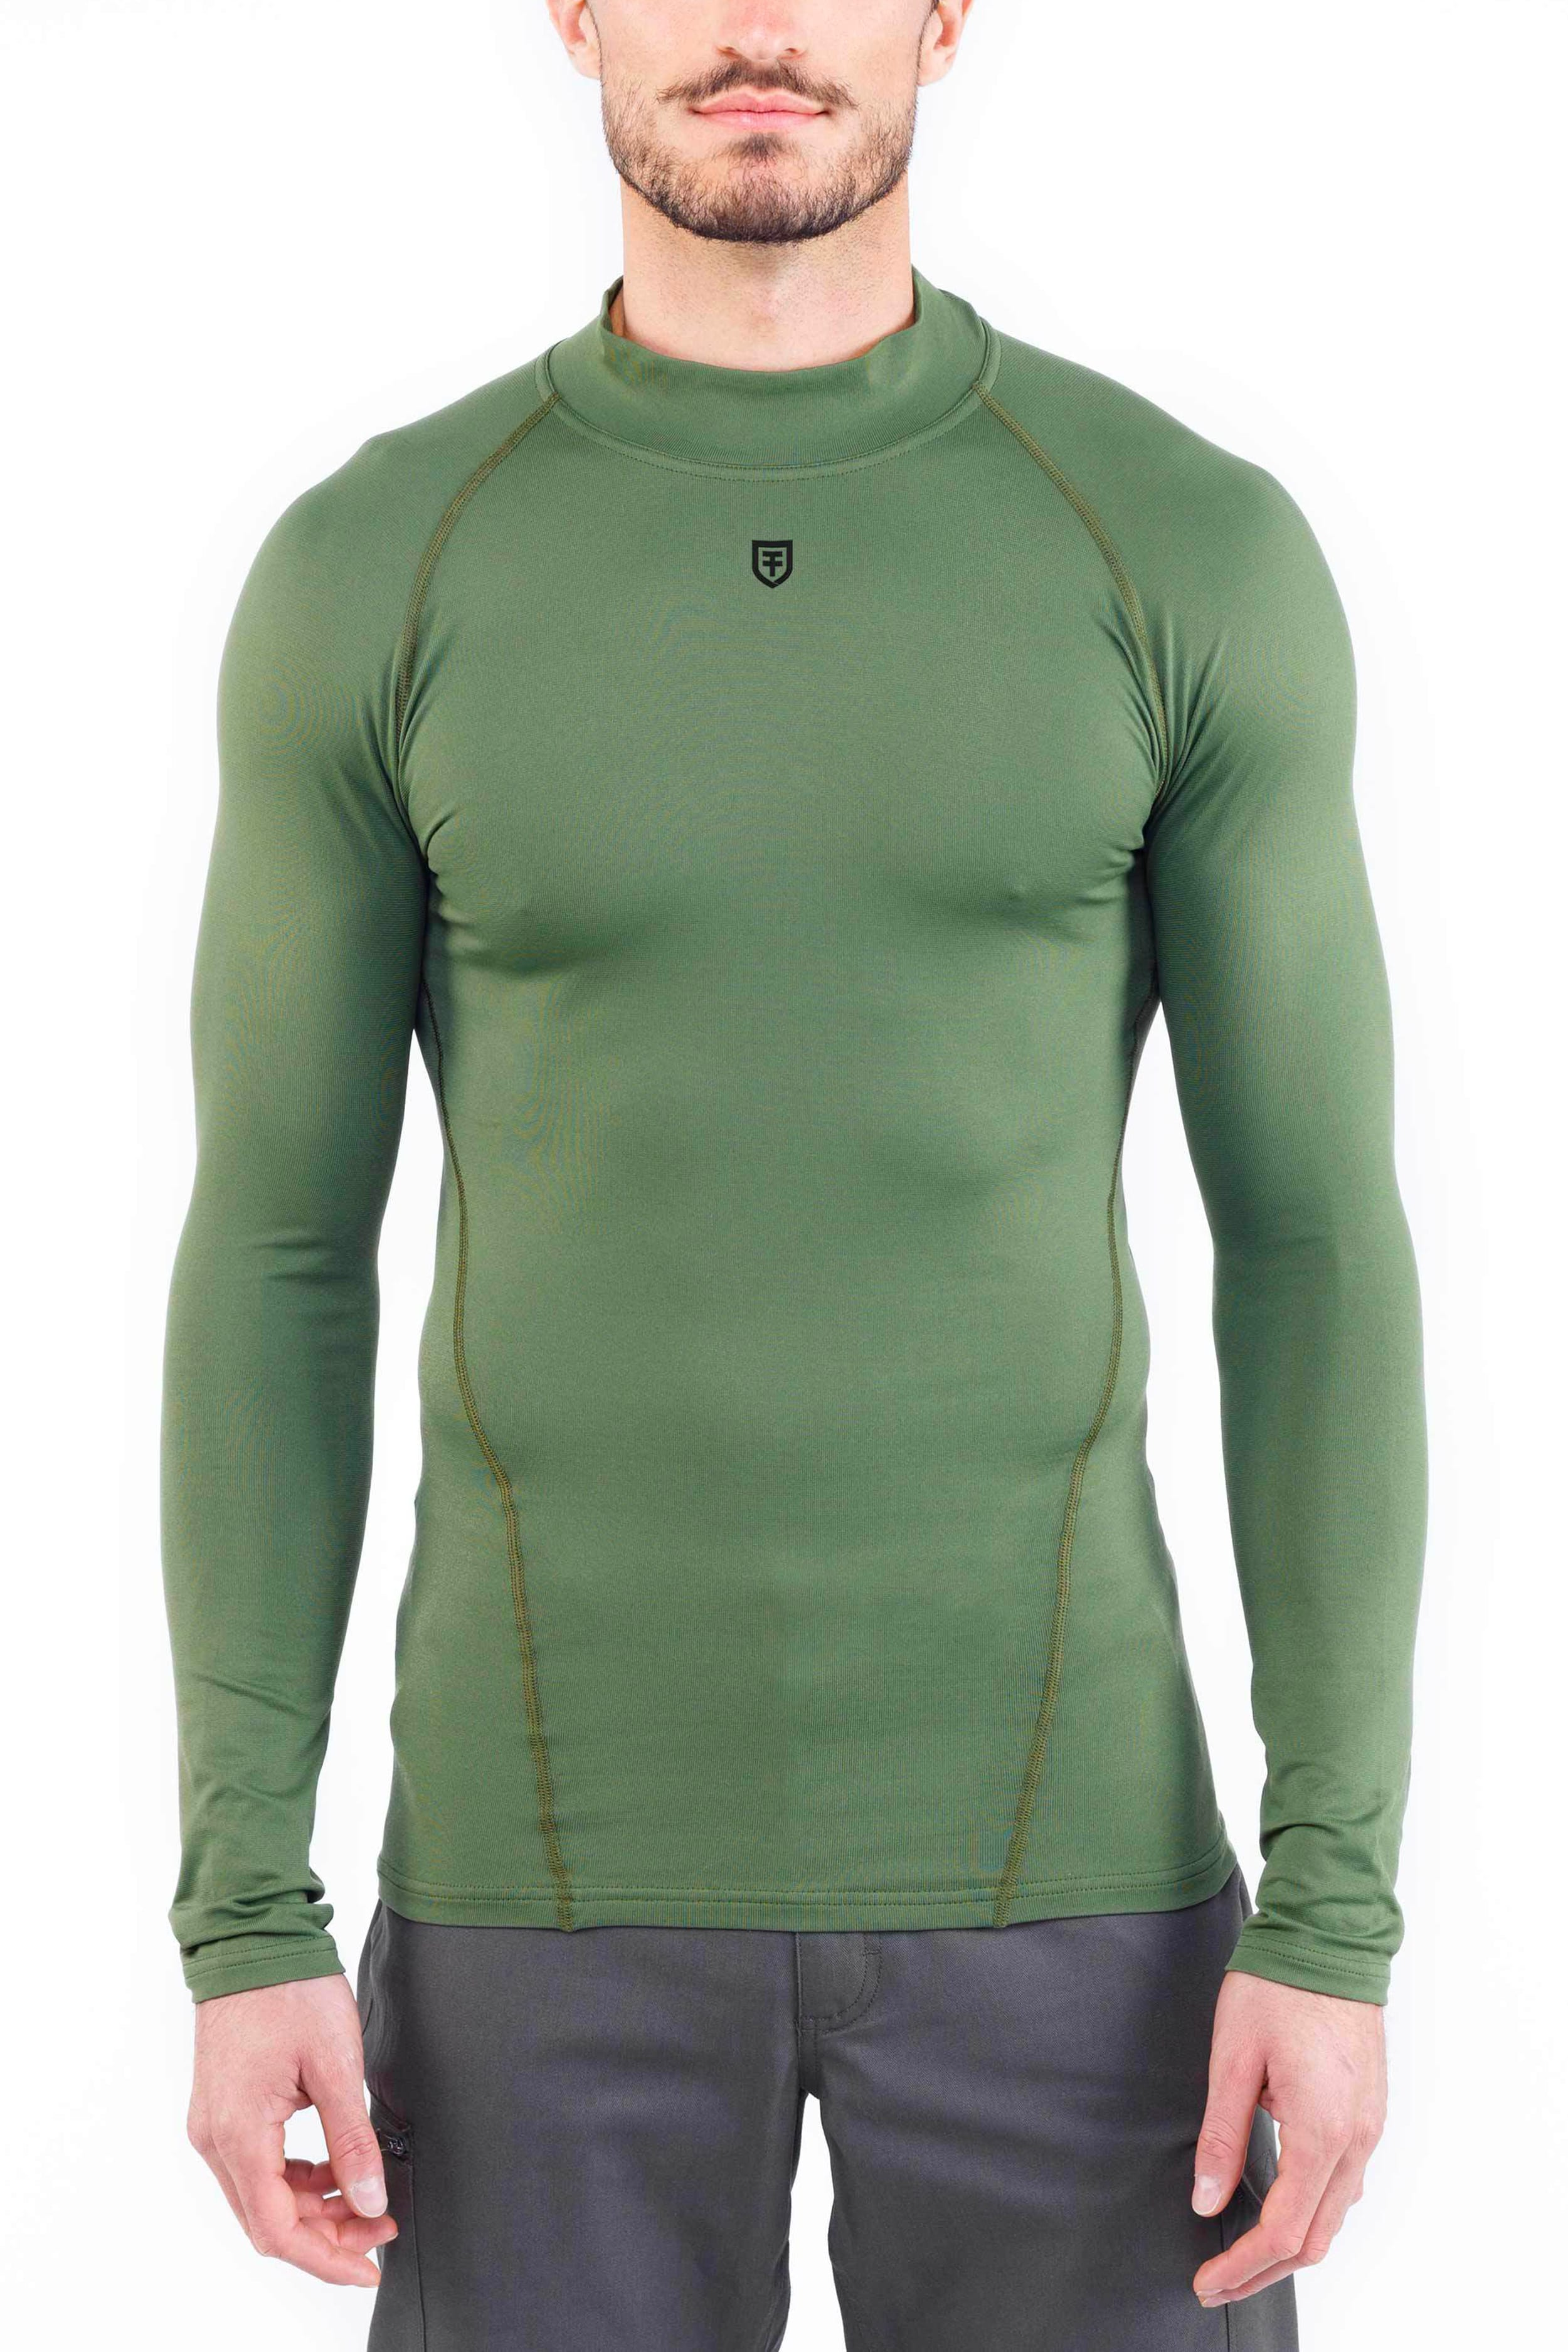 TACTICAL THERMAL TRAINING SHIRT